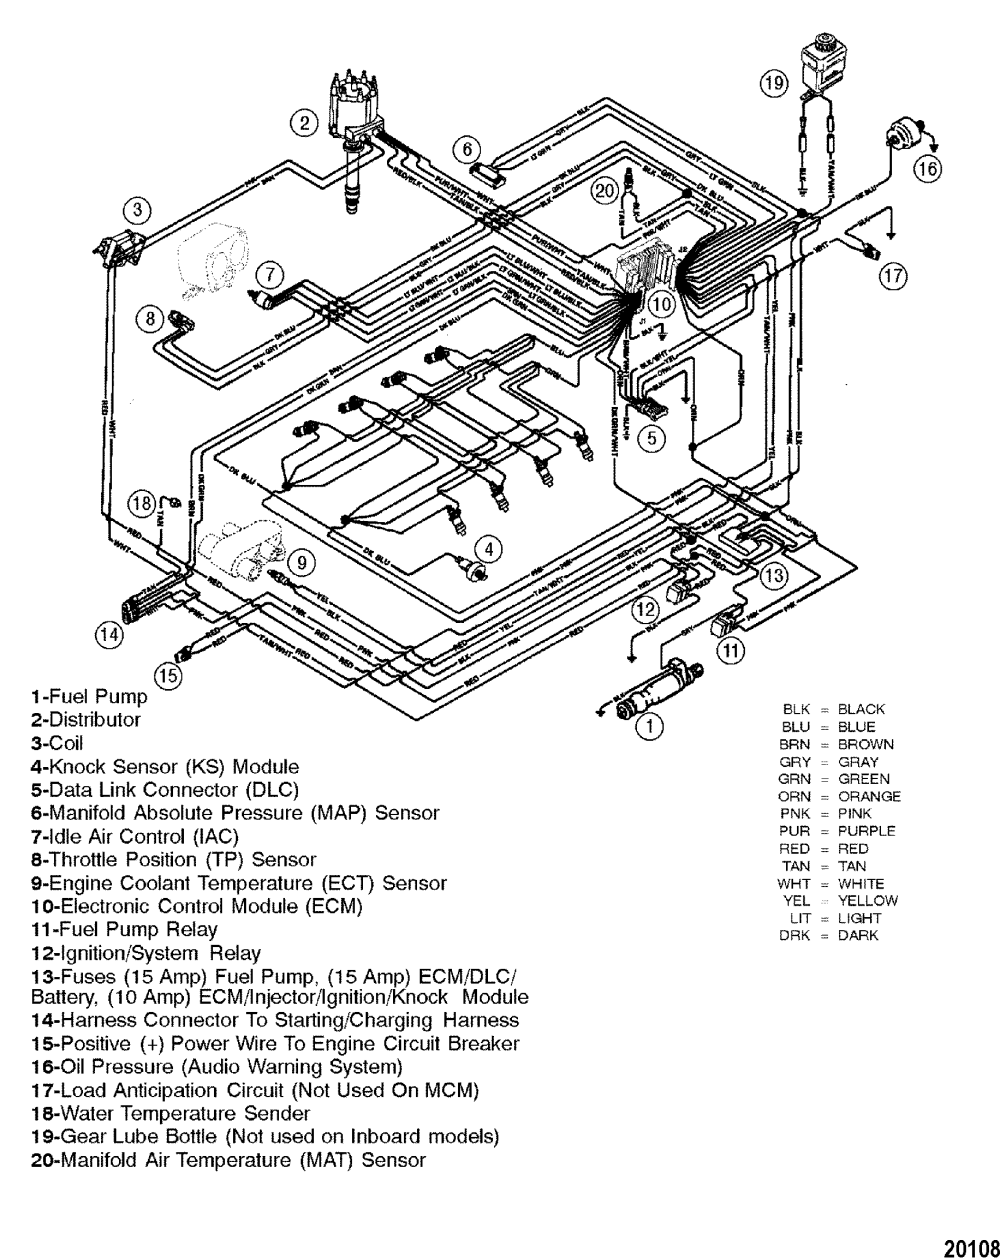 medium resolution of 5 7 mercruiser engine wiring diagram wiring diagram inside mercruiser 5 0 mpi engine diagram mercruiser 5